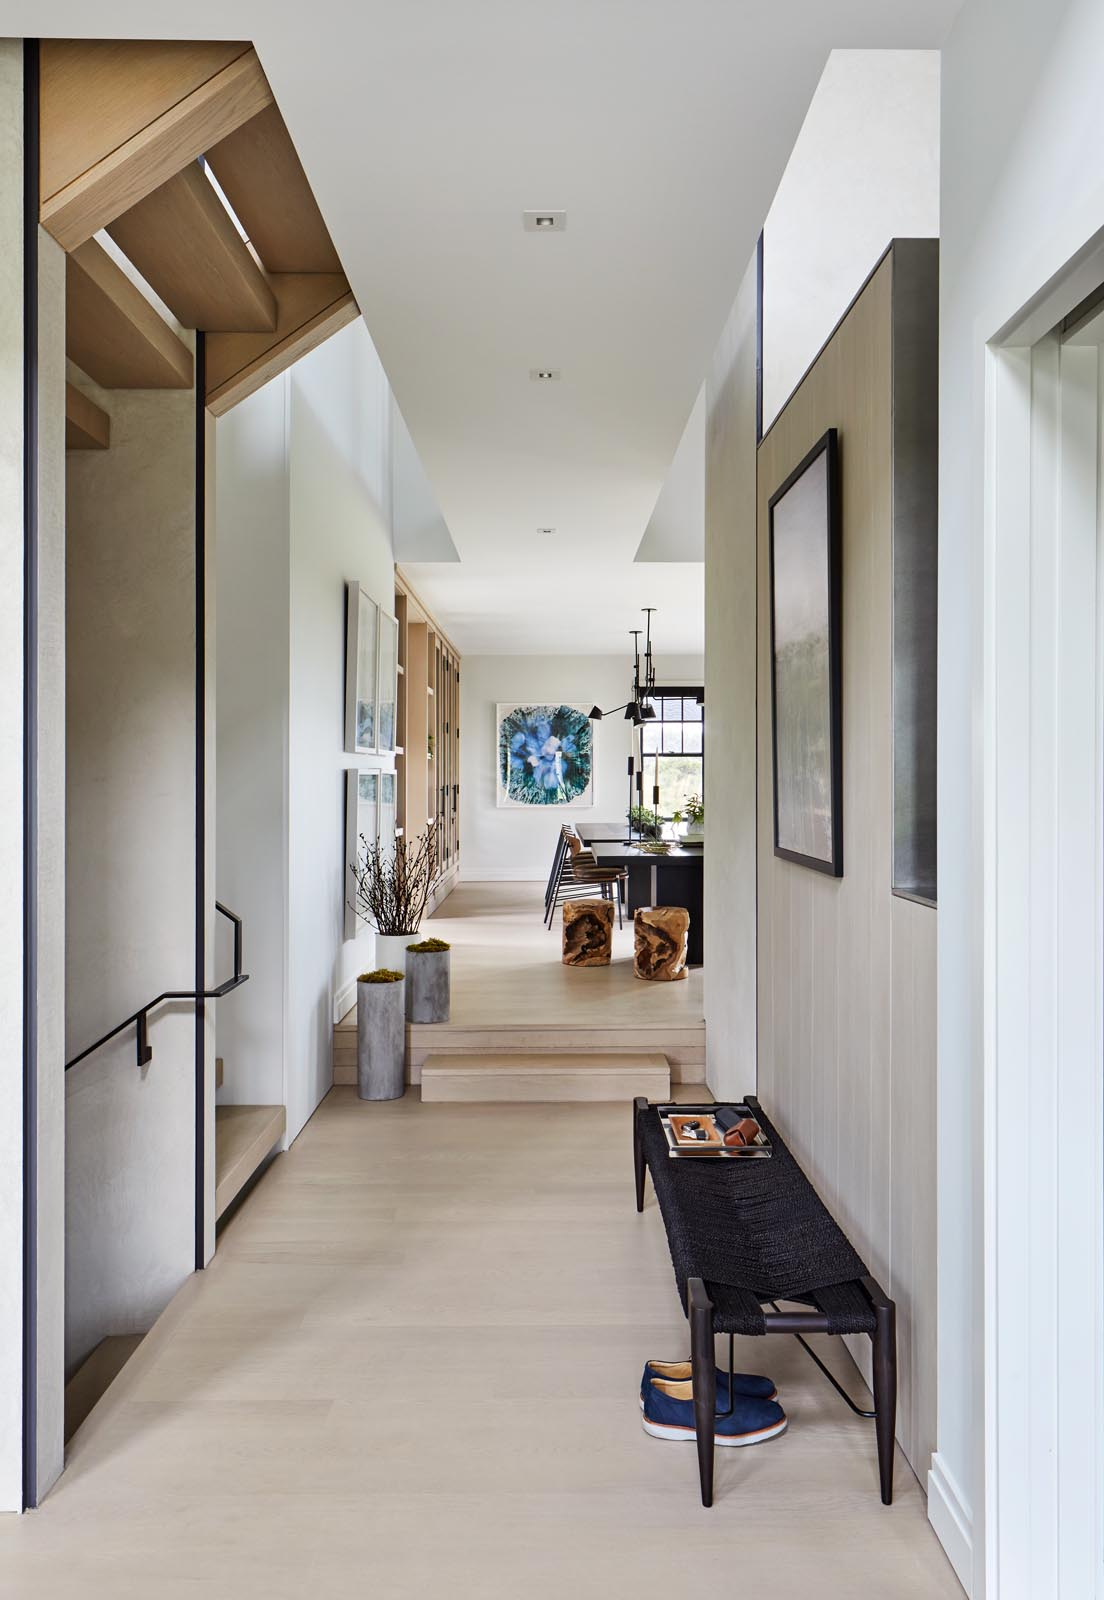 A modern entryway furnished with a simple black bench and artwork.